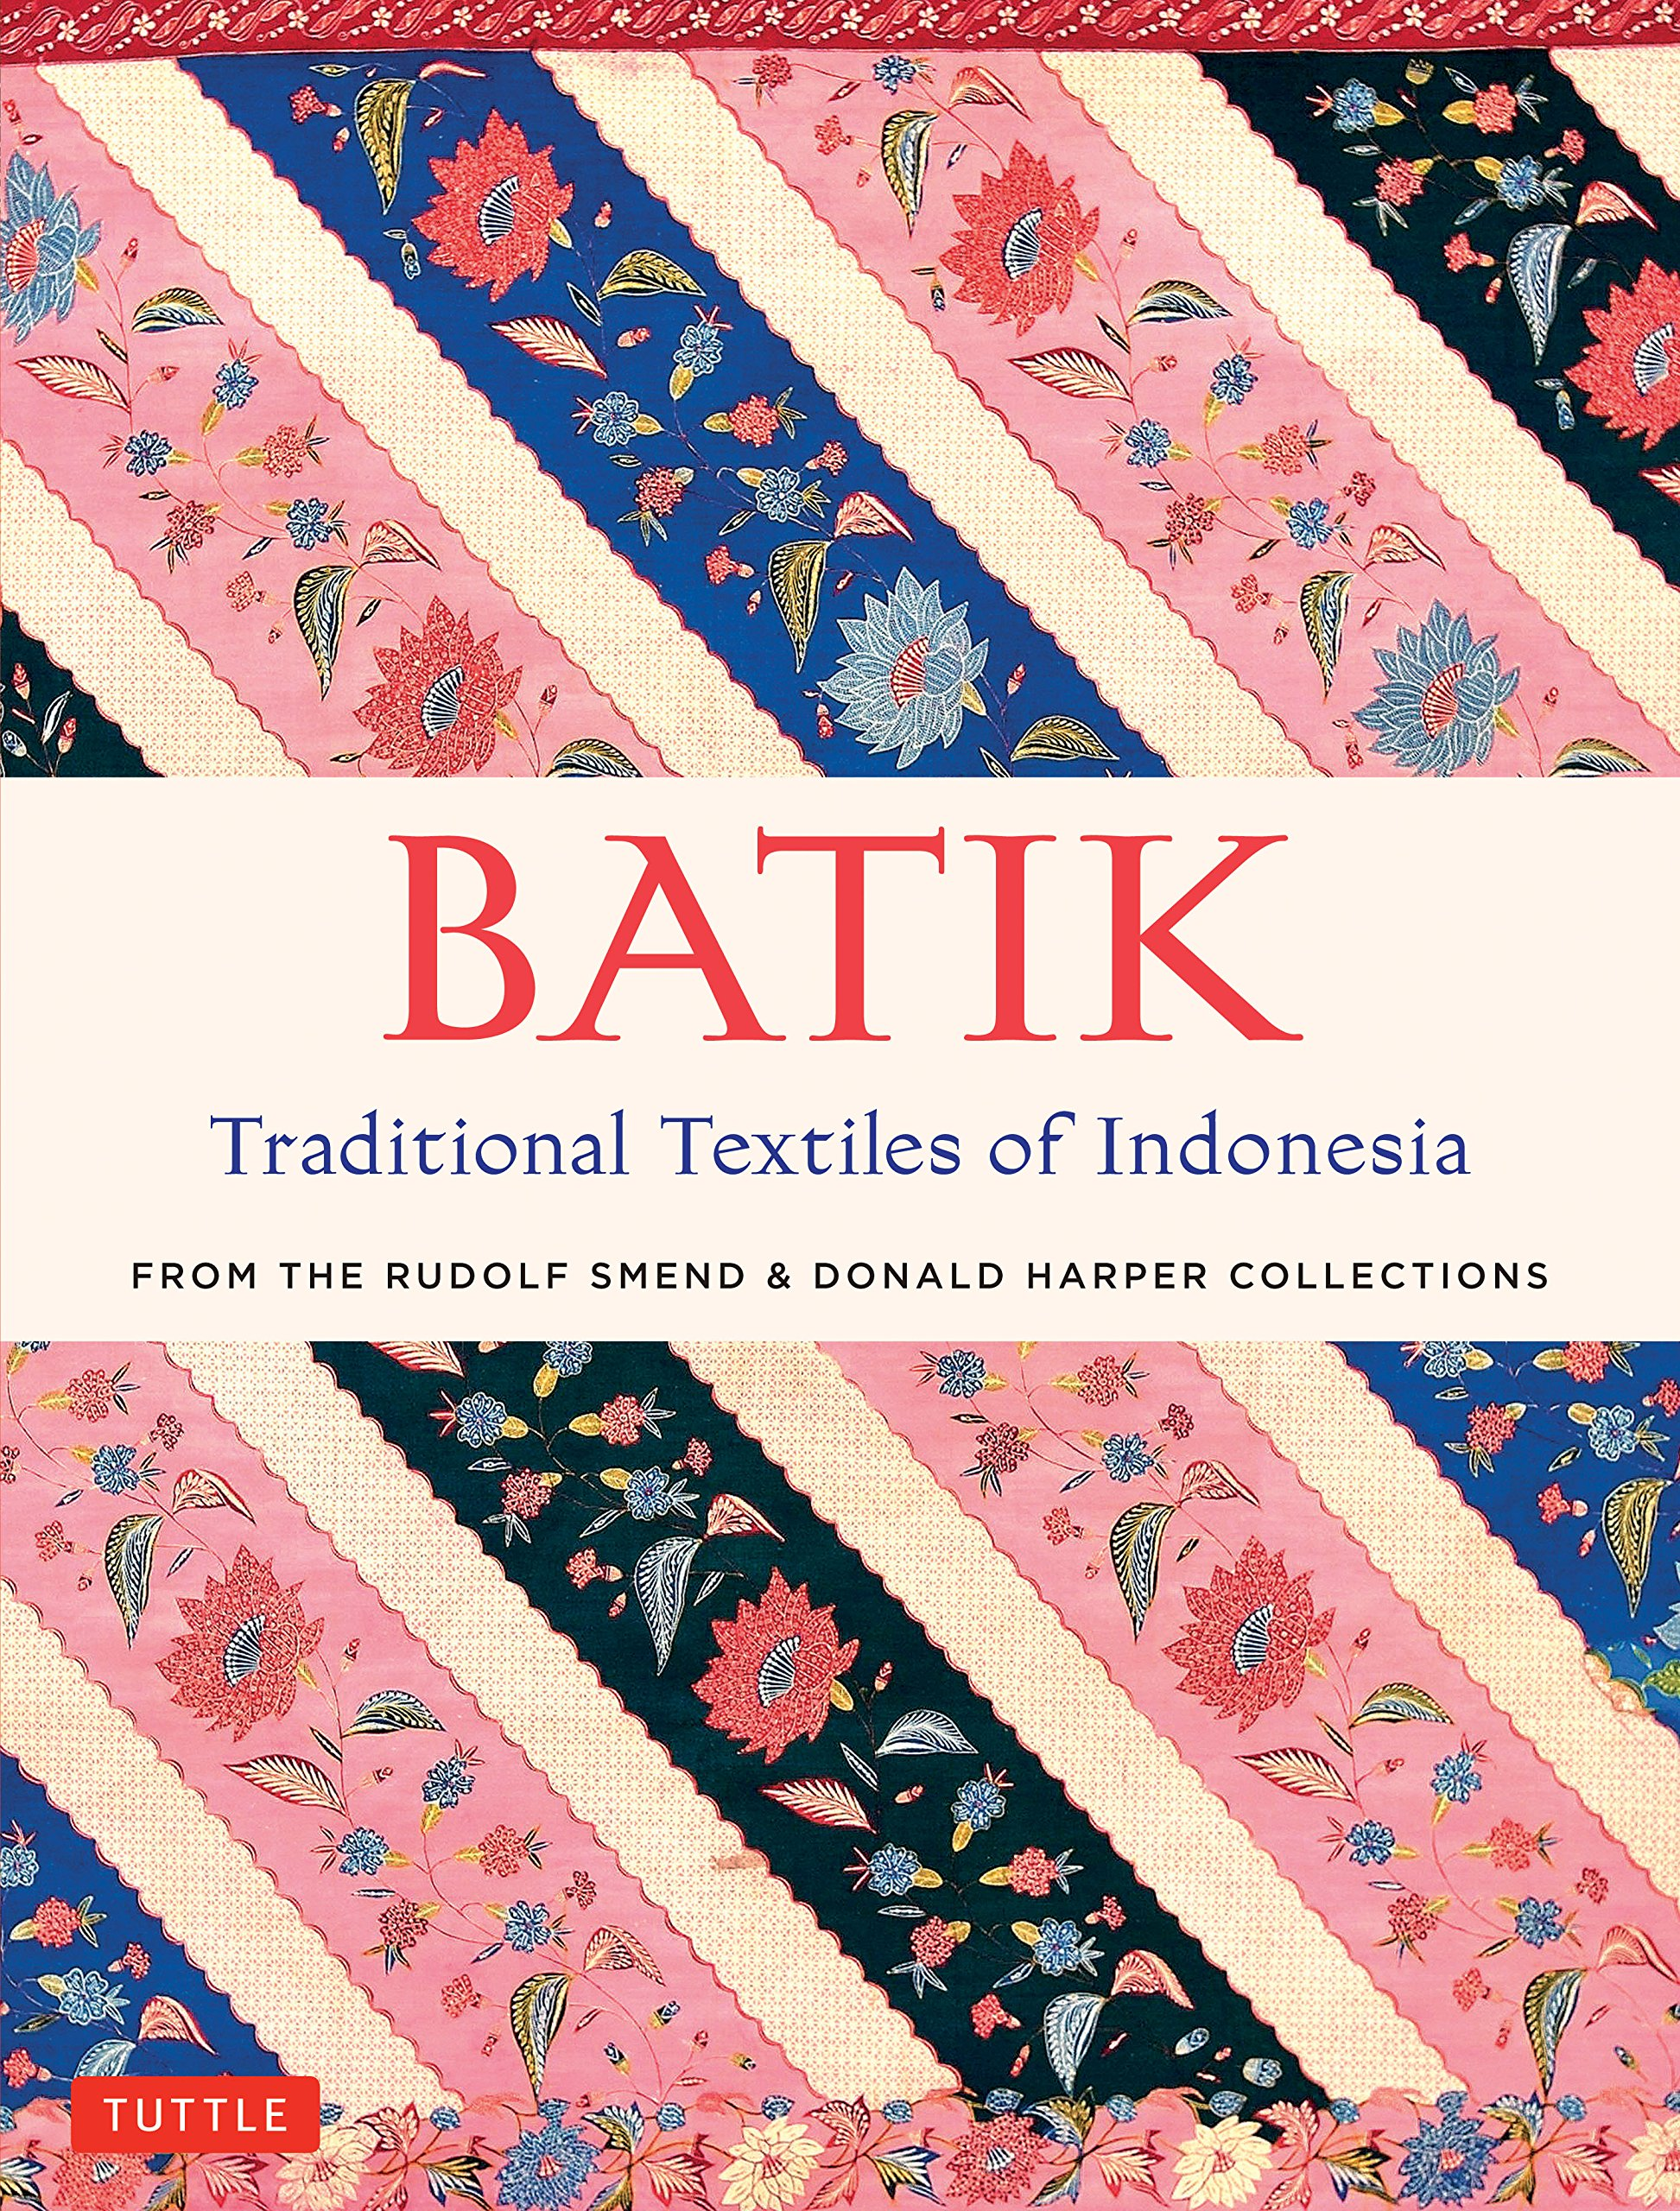 Batik, Traditional Textiles of Indonesia: From The Rudolf Smend & Donald Harper Collections: Amazon.es: Rudolf Smend, Donald Harper: Libros en idiomas ...